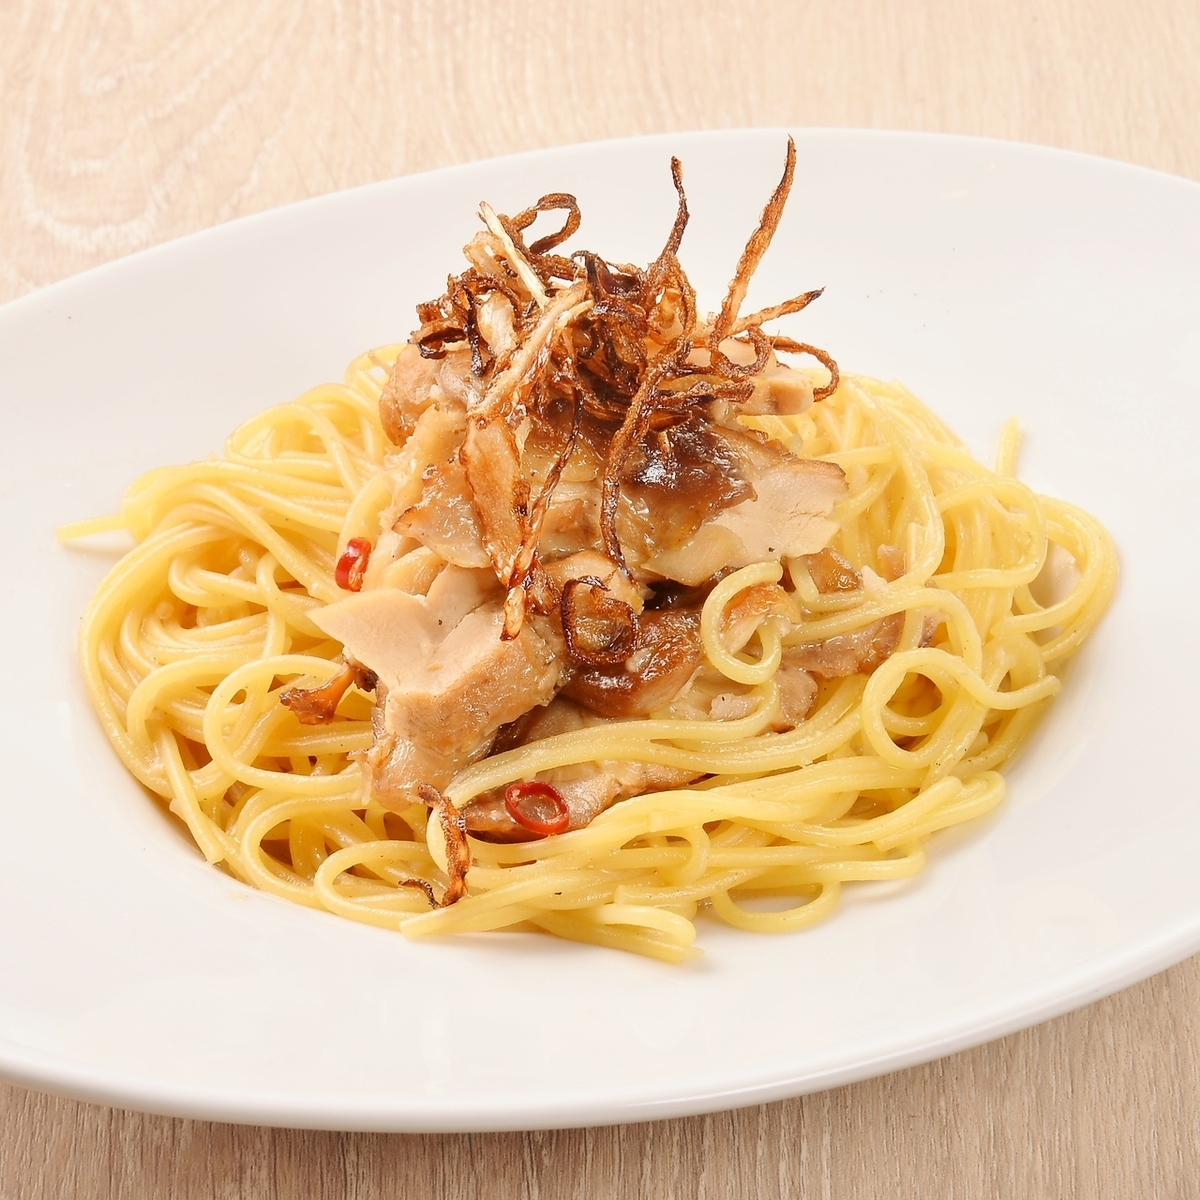 Japanese style pasta with smoked chicken